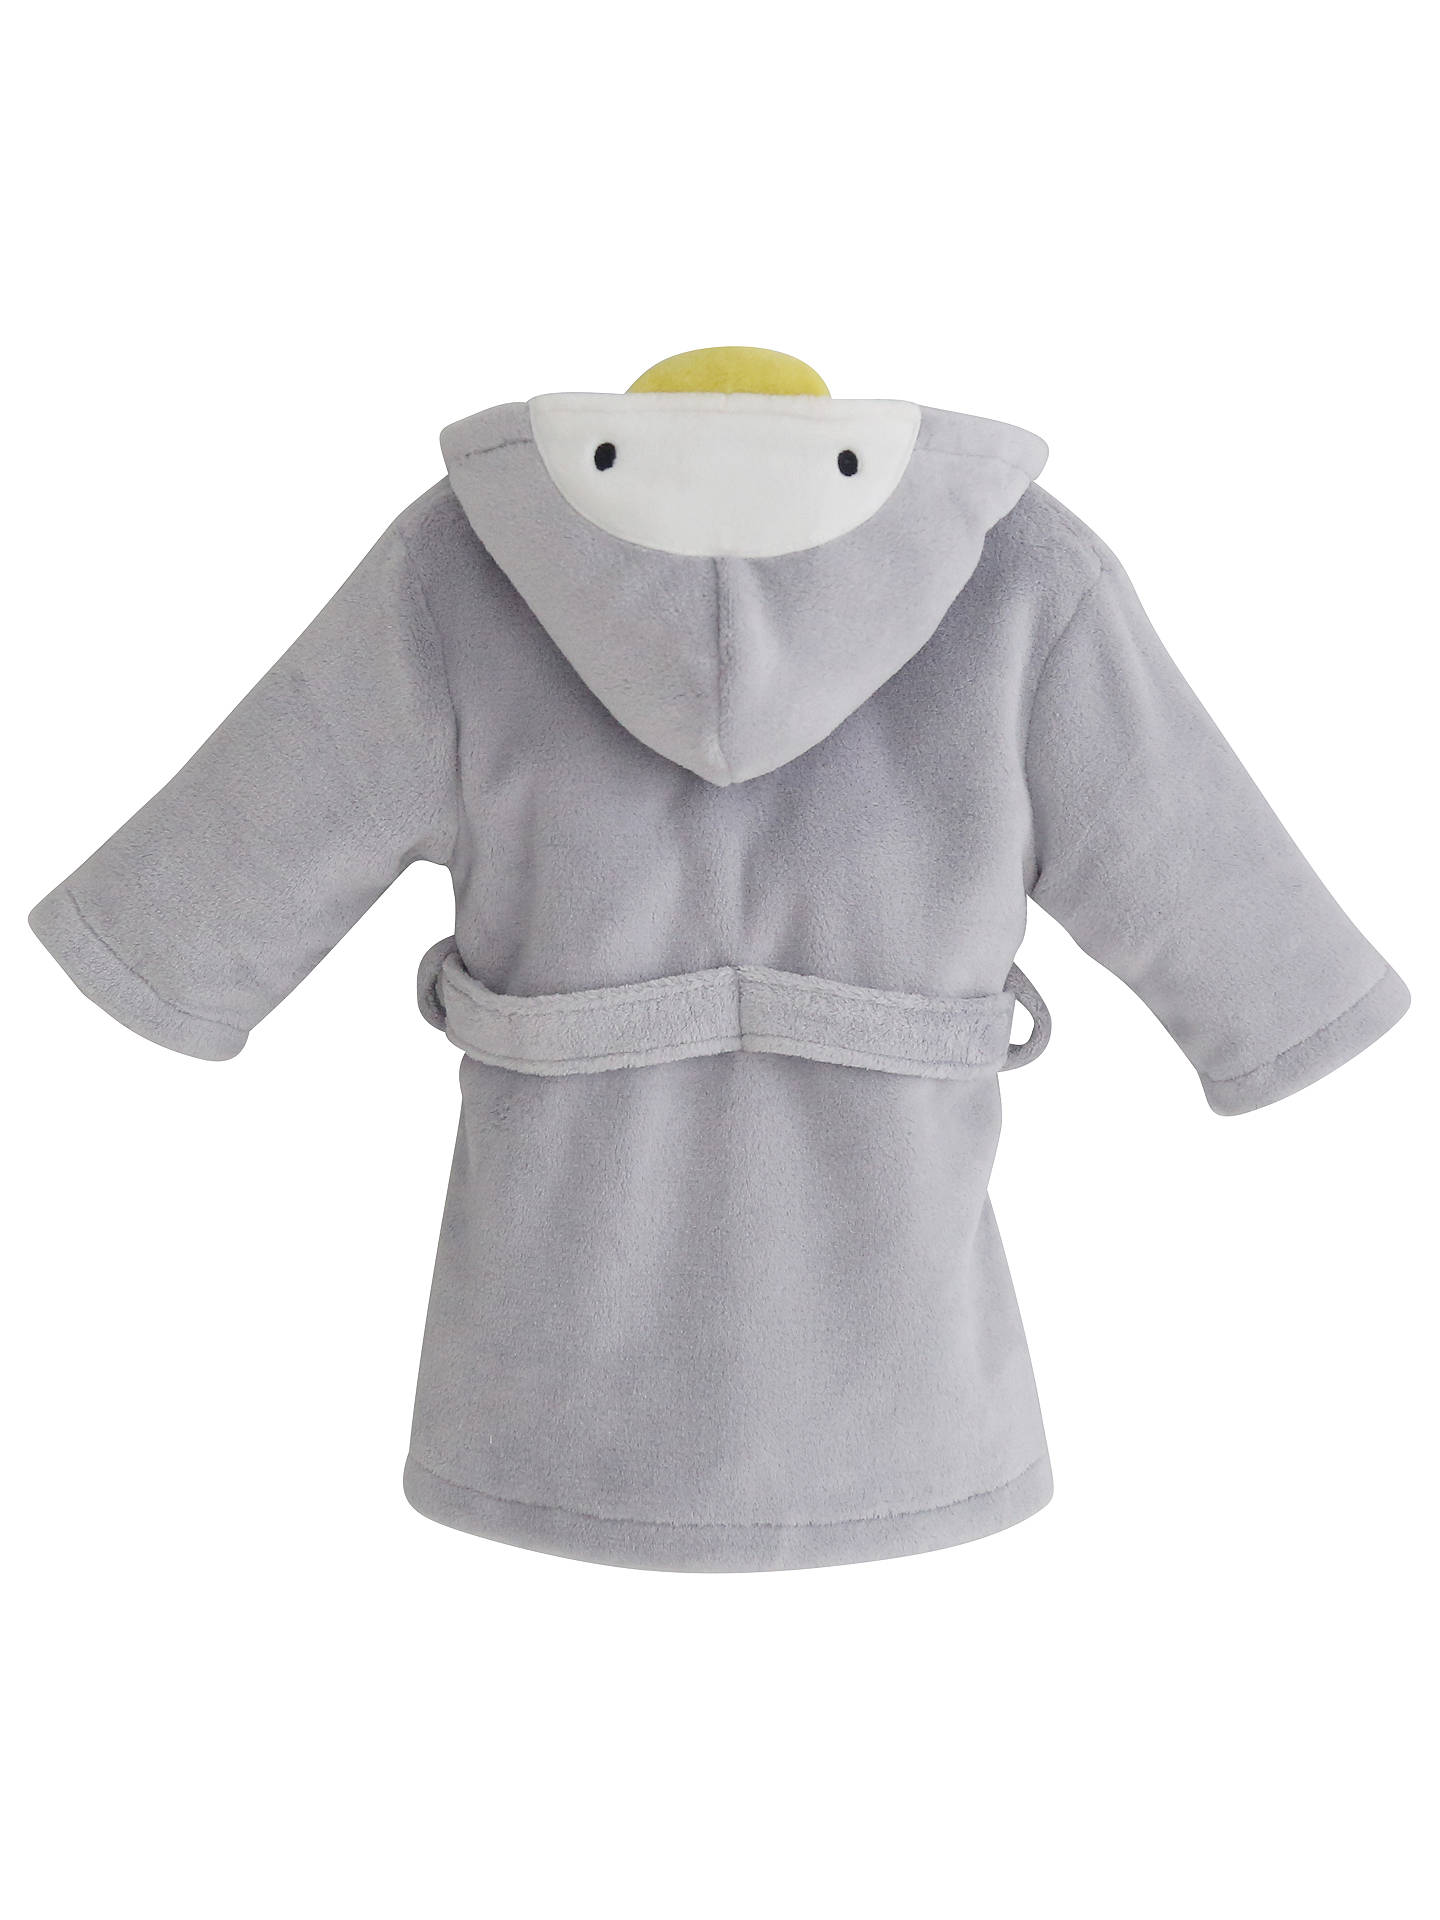 6b024c5b0 Buy My 1st Years Penguin Fleece Robe, Grey, 0-6 months Online at ...